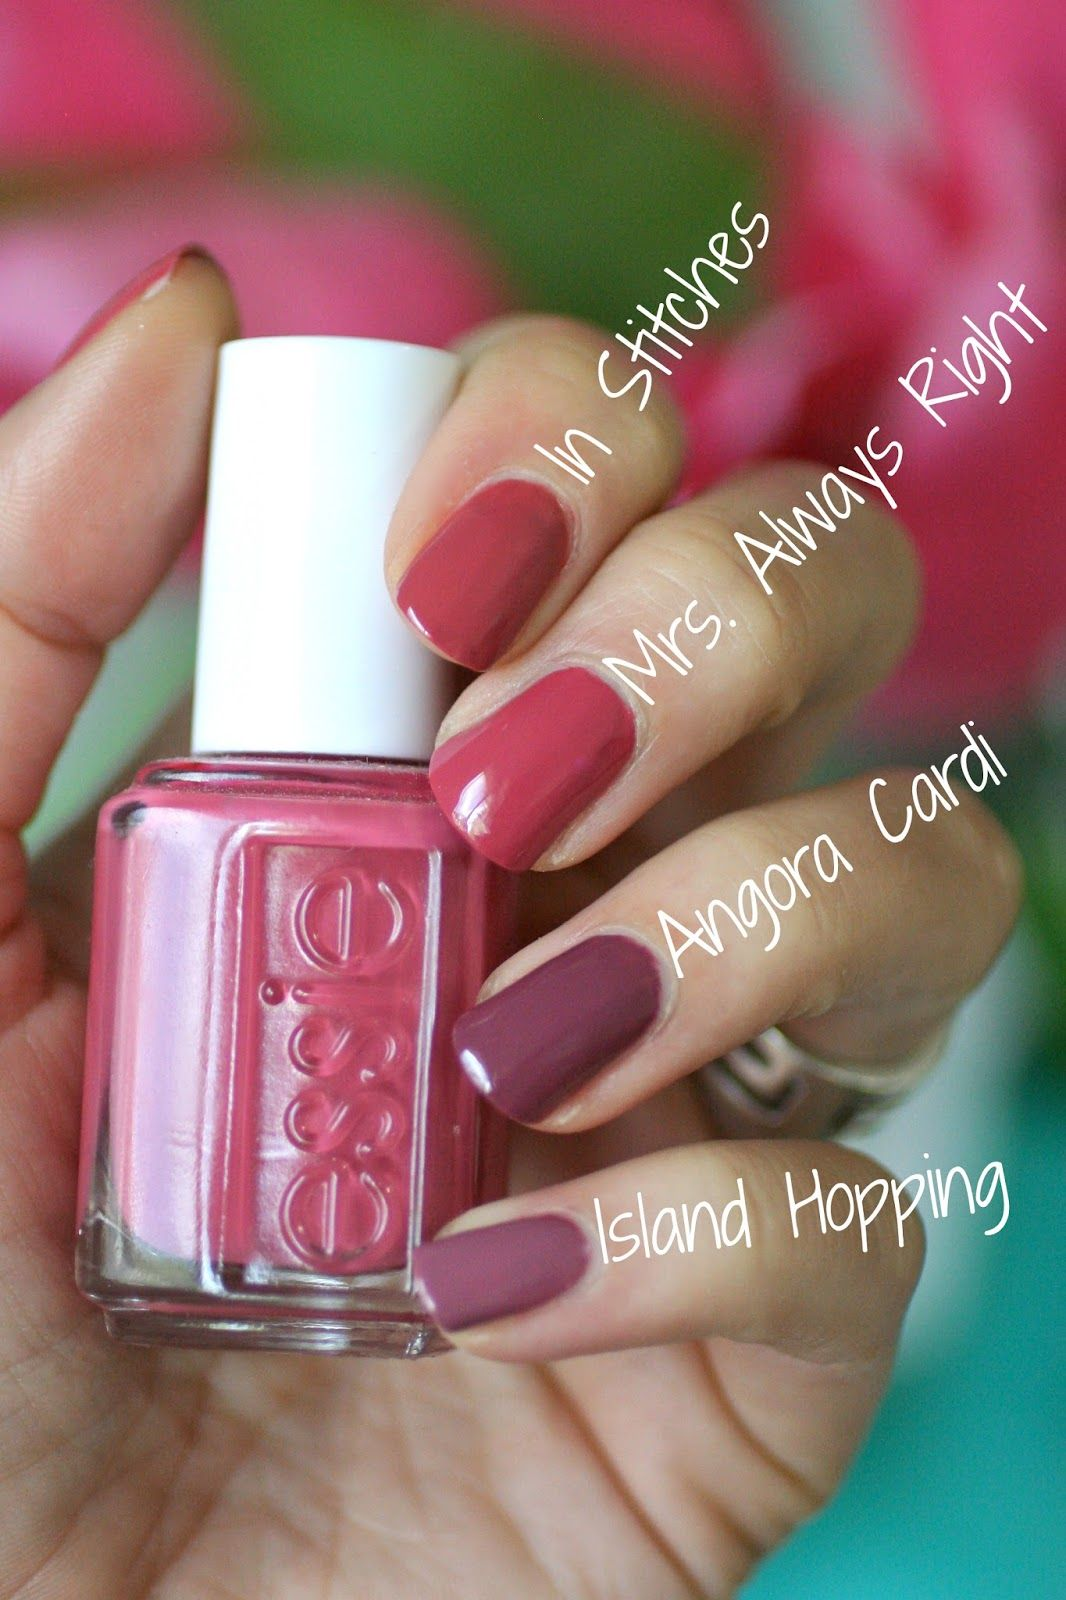 Sweet Cotton Candy Nail Colors and Designs | Envy, Collection and Makeup